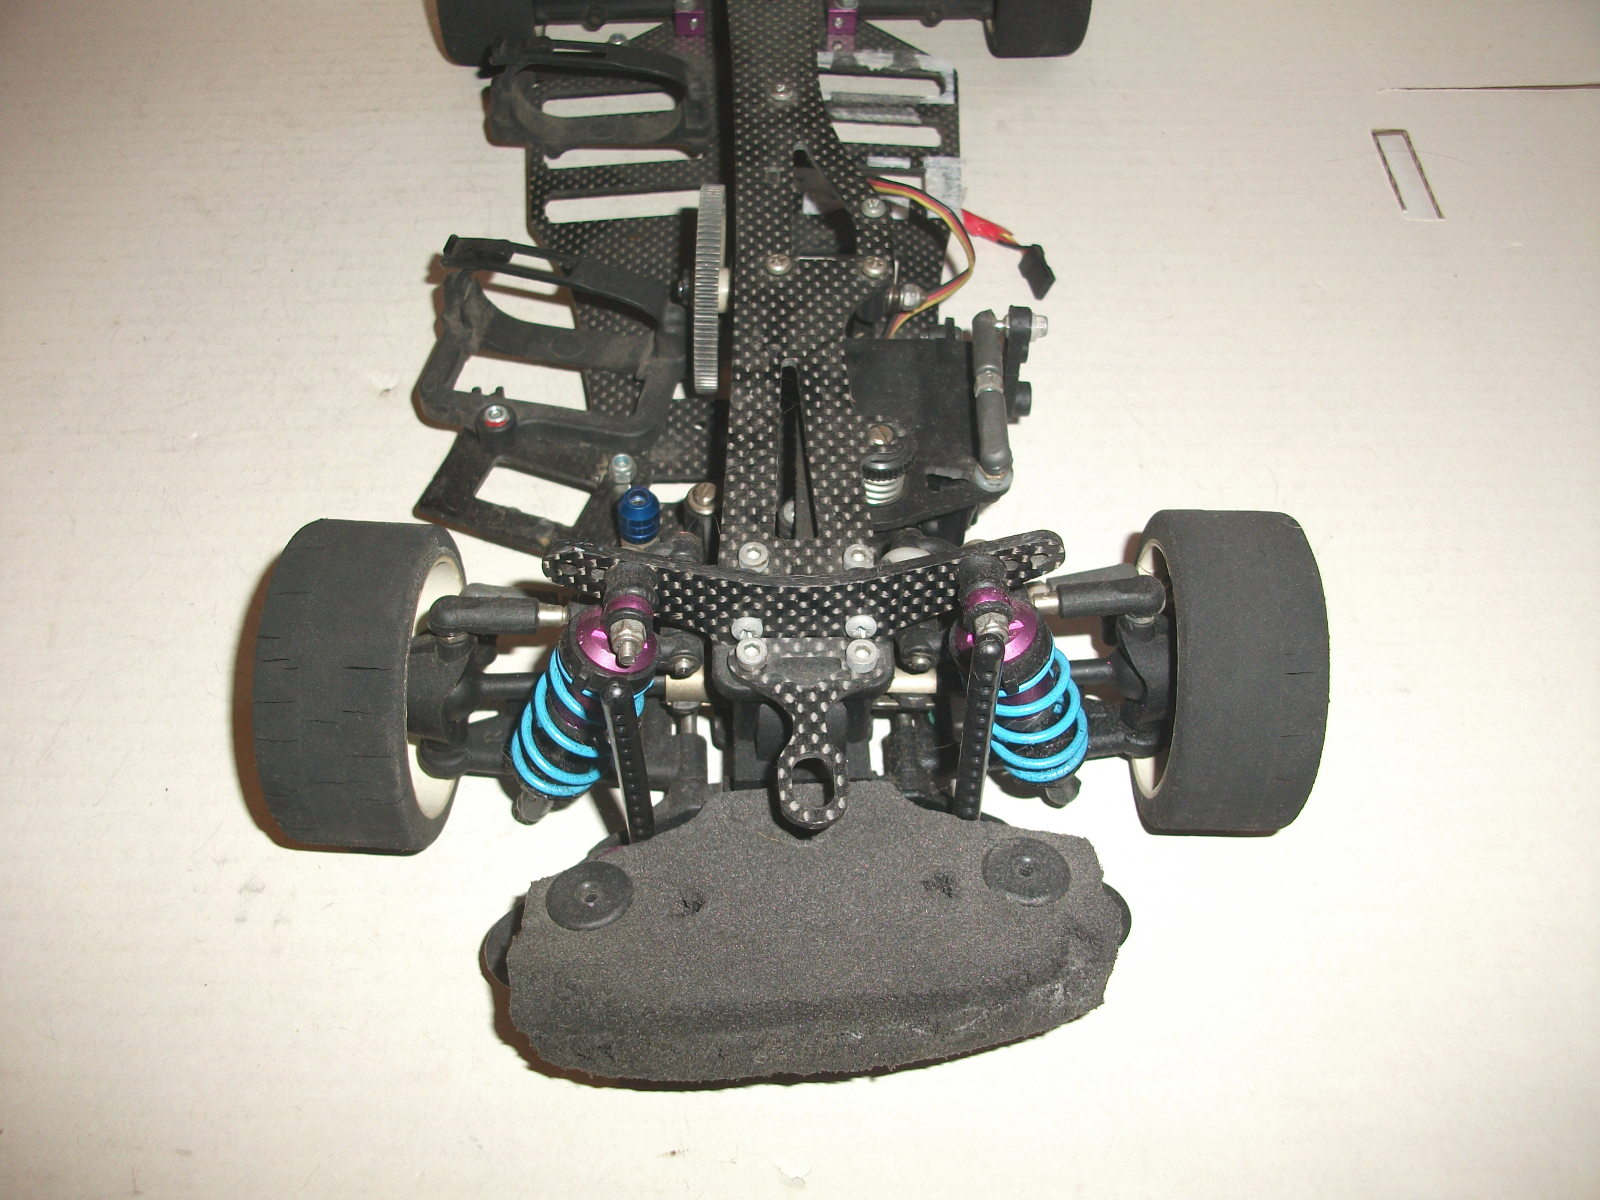 schumacher sst mission 1 10 4wd rc touring car chassis ebay. Black Bedroom Furniture Sets. Home Design Ideas